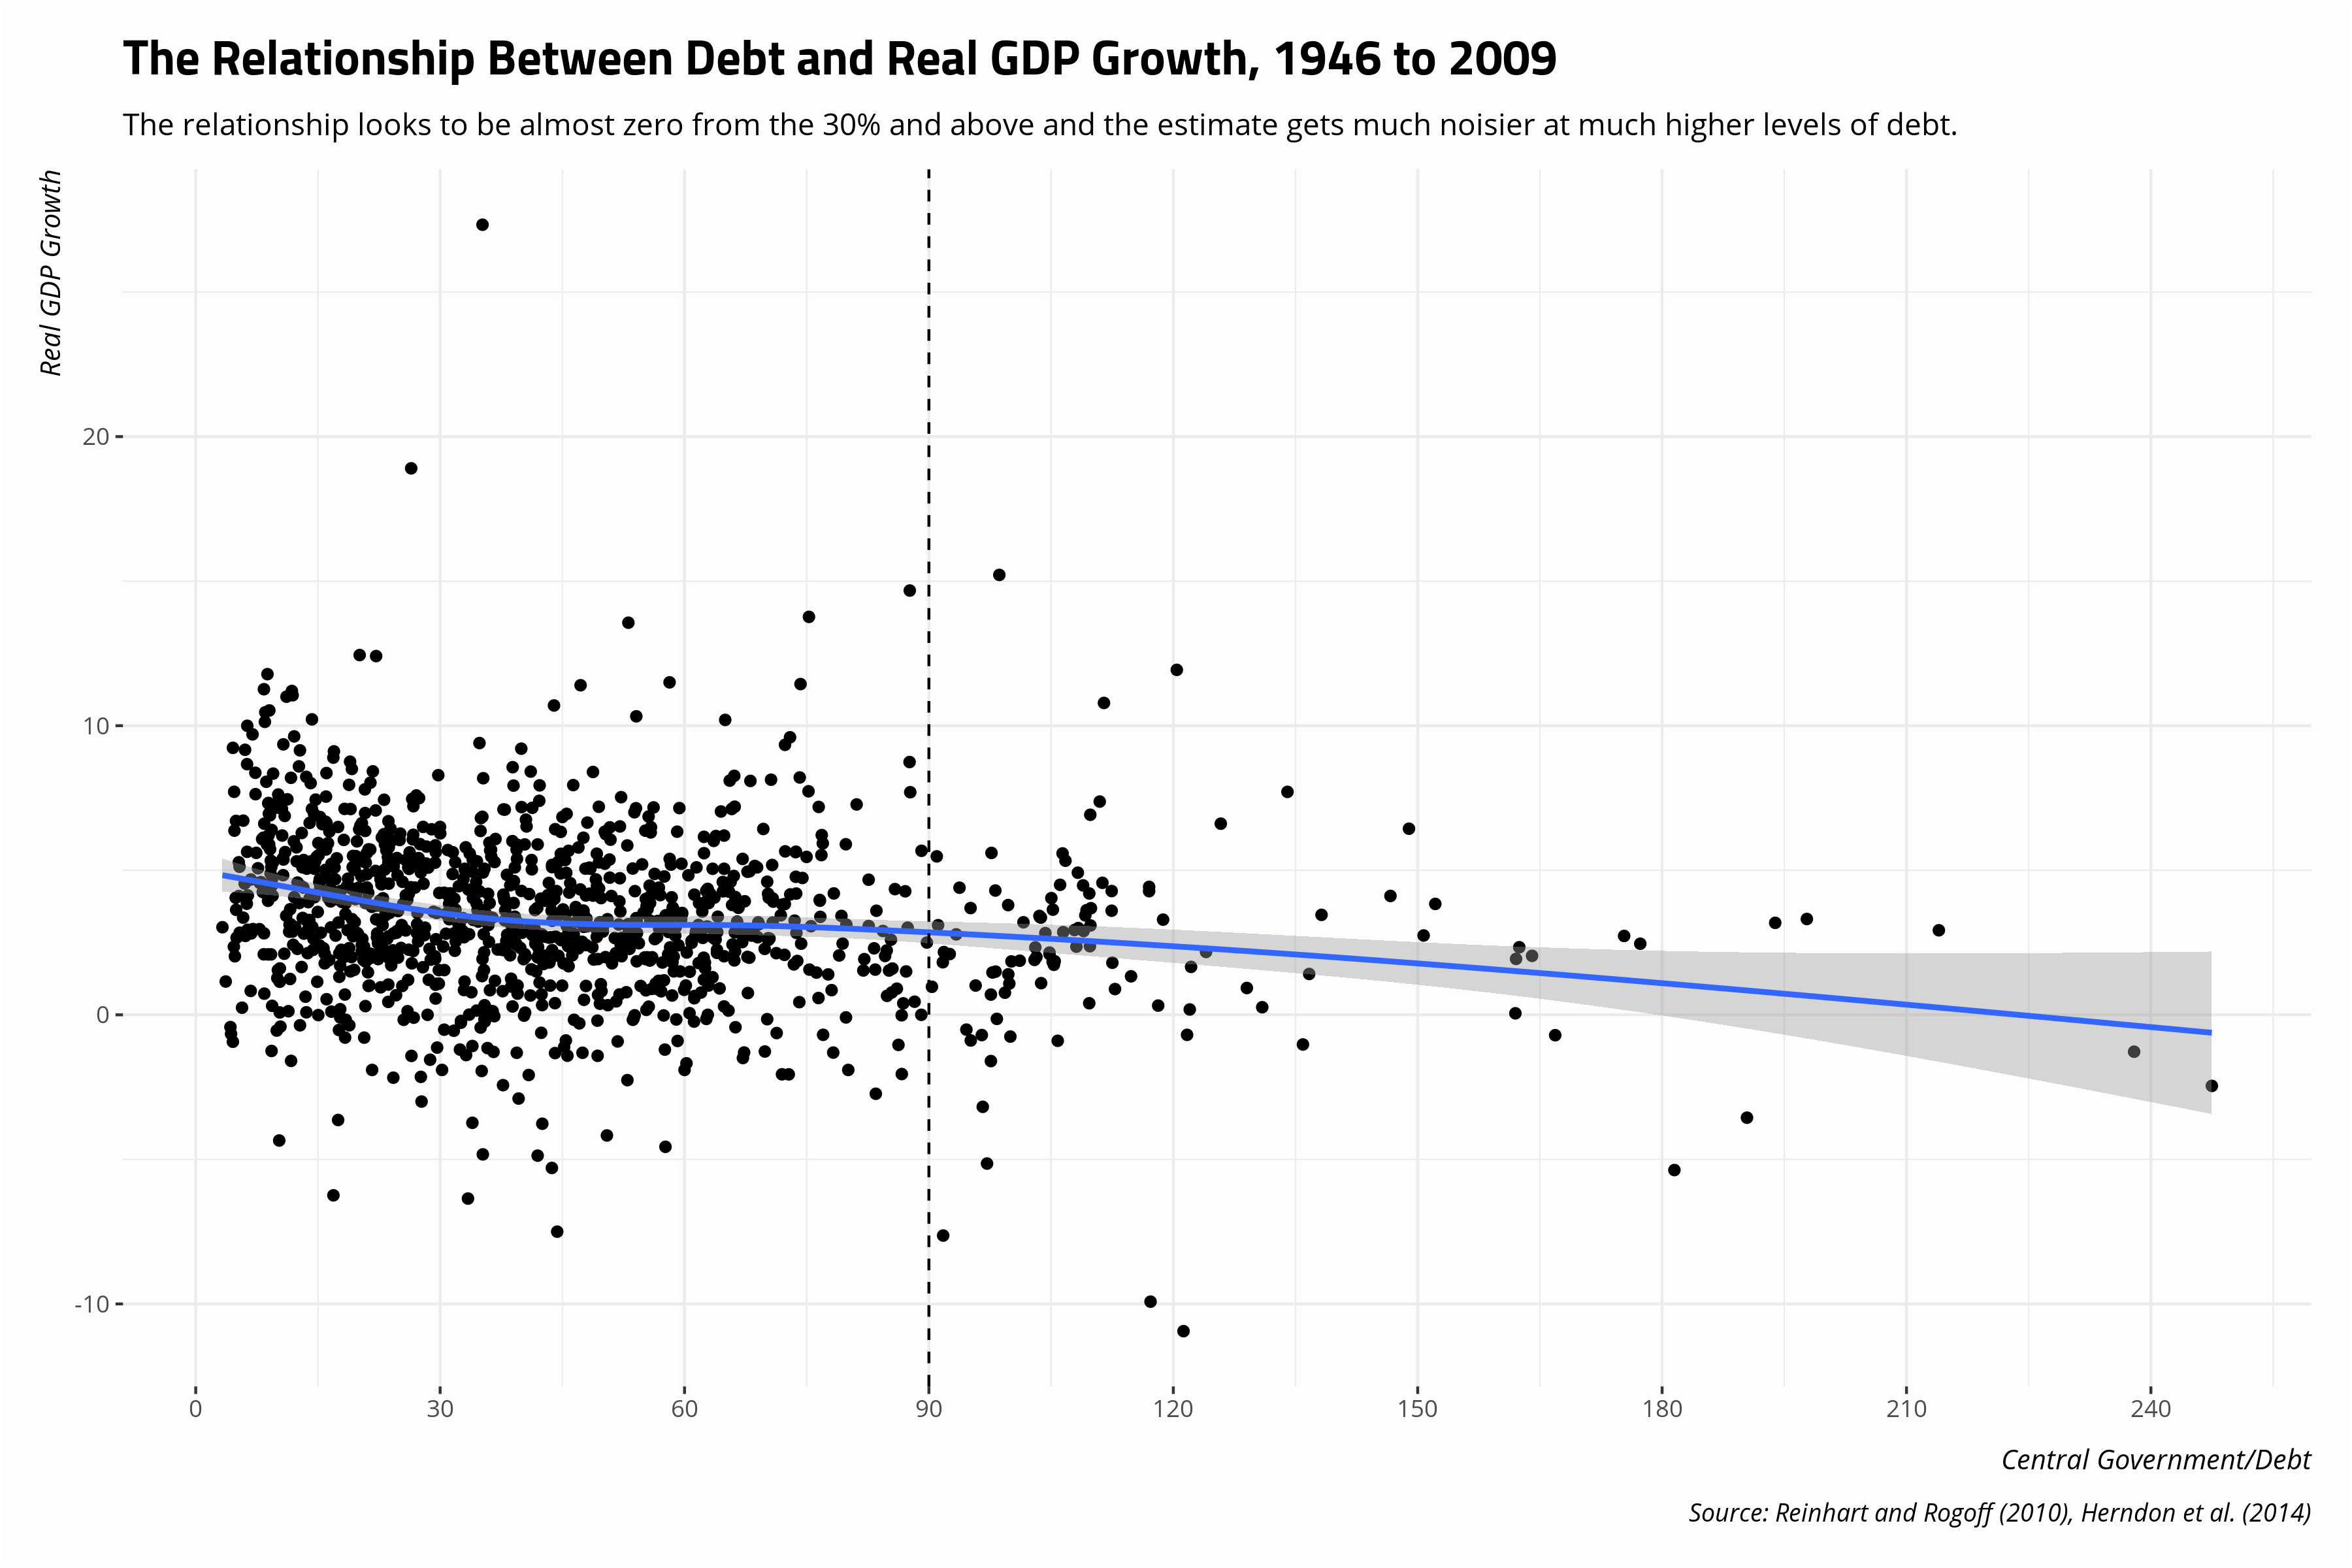 plot of chunk relationship-between-debt-real-gdp-growth-1946-2009